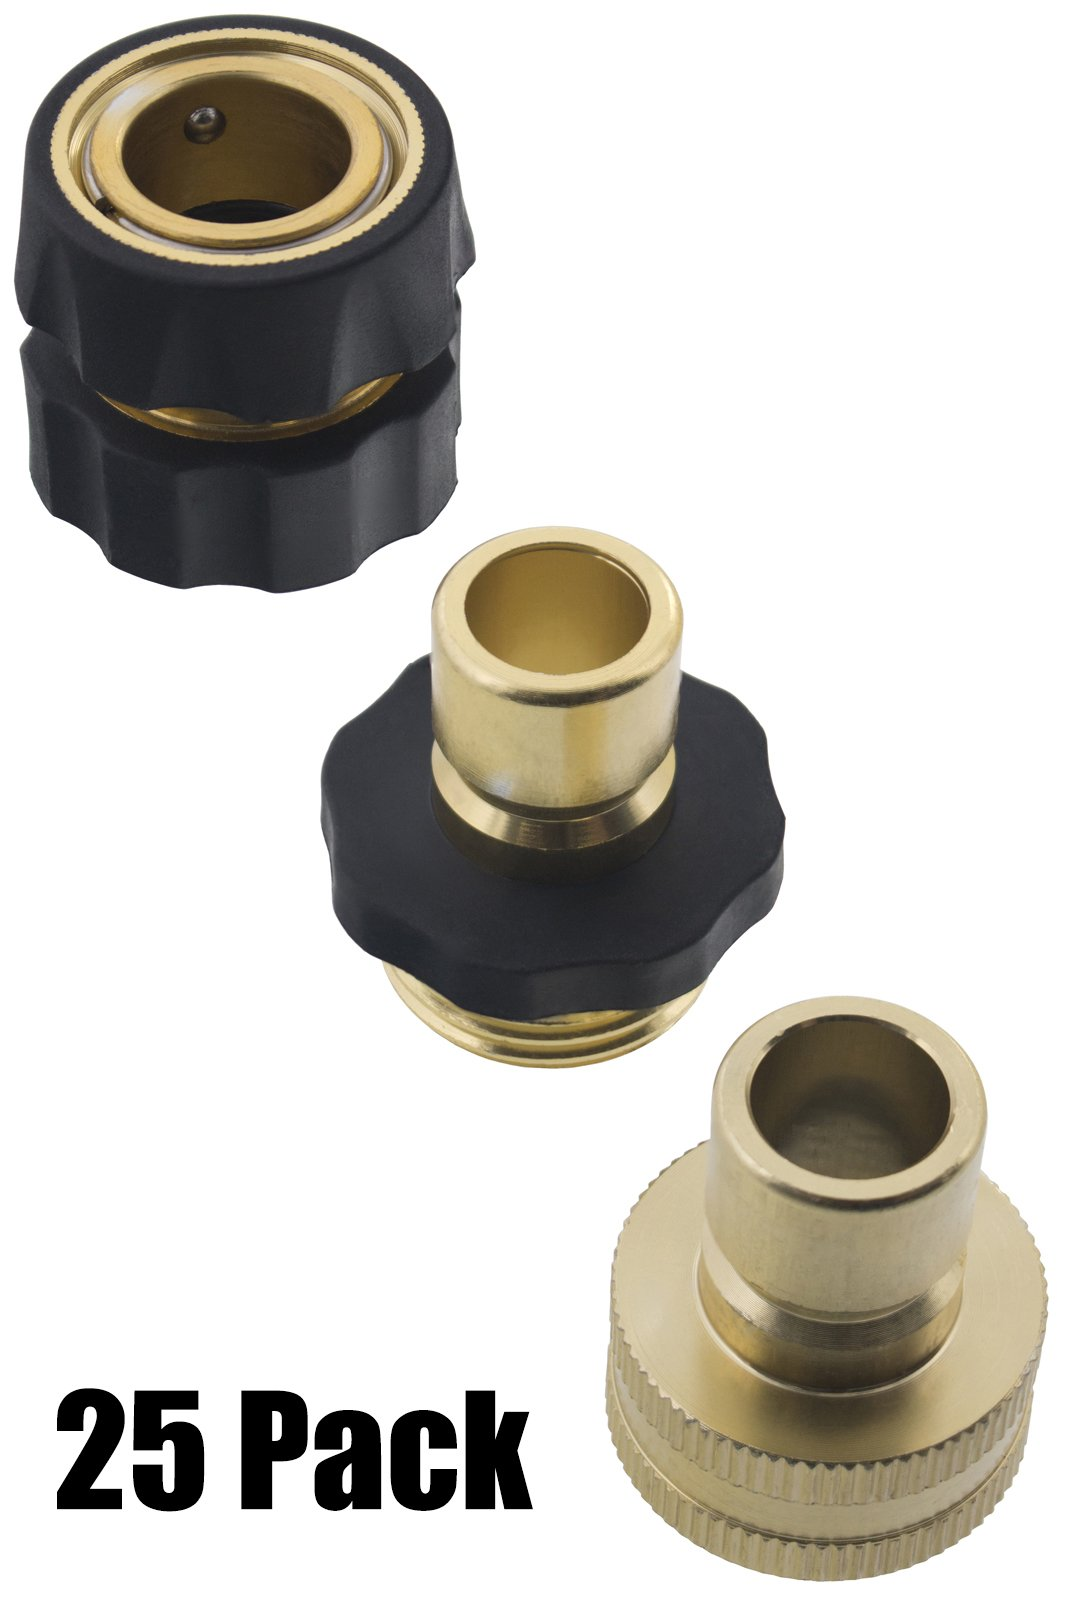 Erie Tools 25 Garden Hose Pressure Washer Quick Connector Kit with Male Female Connections and Nylon Grip